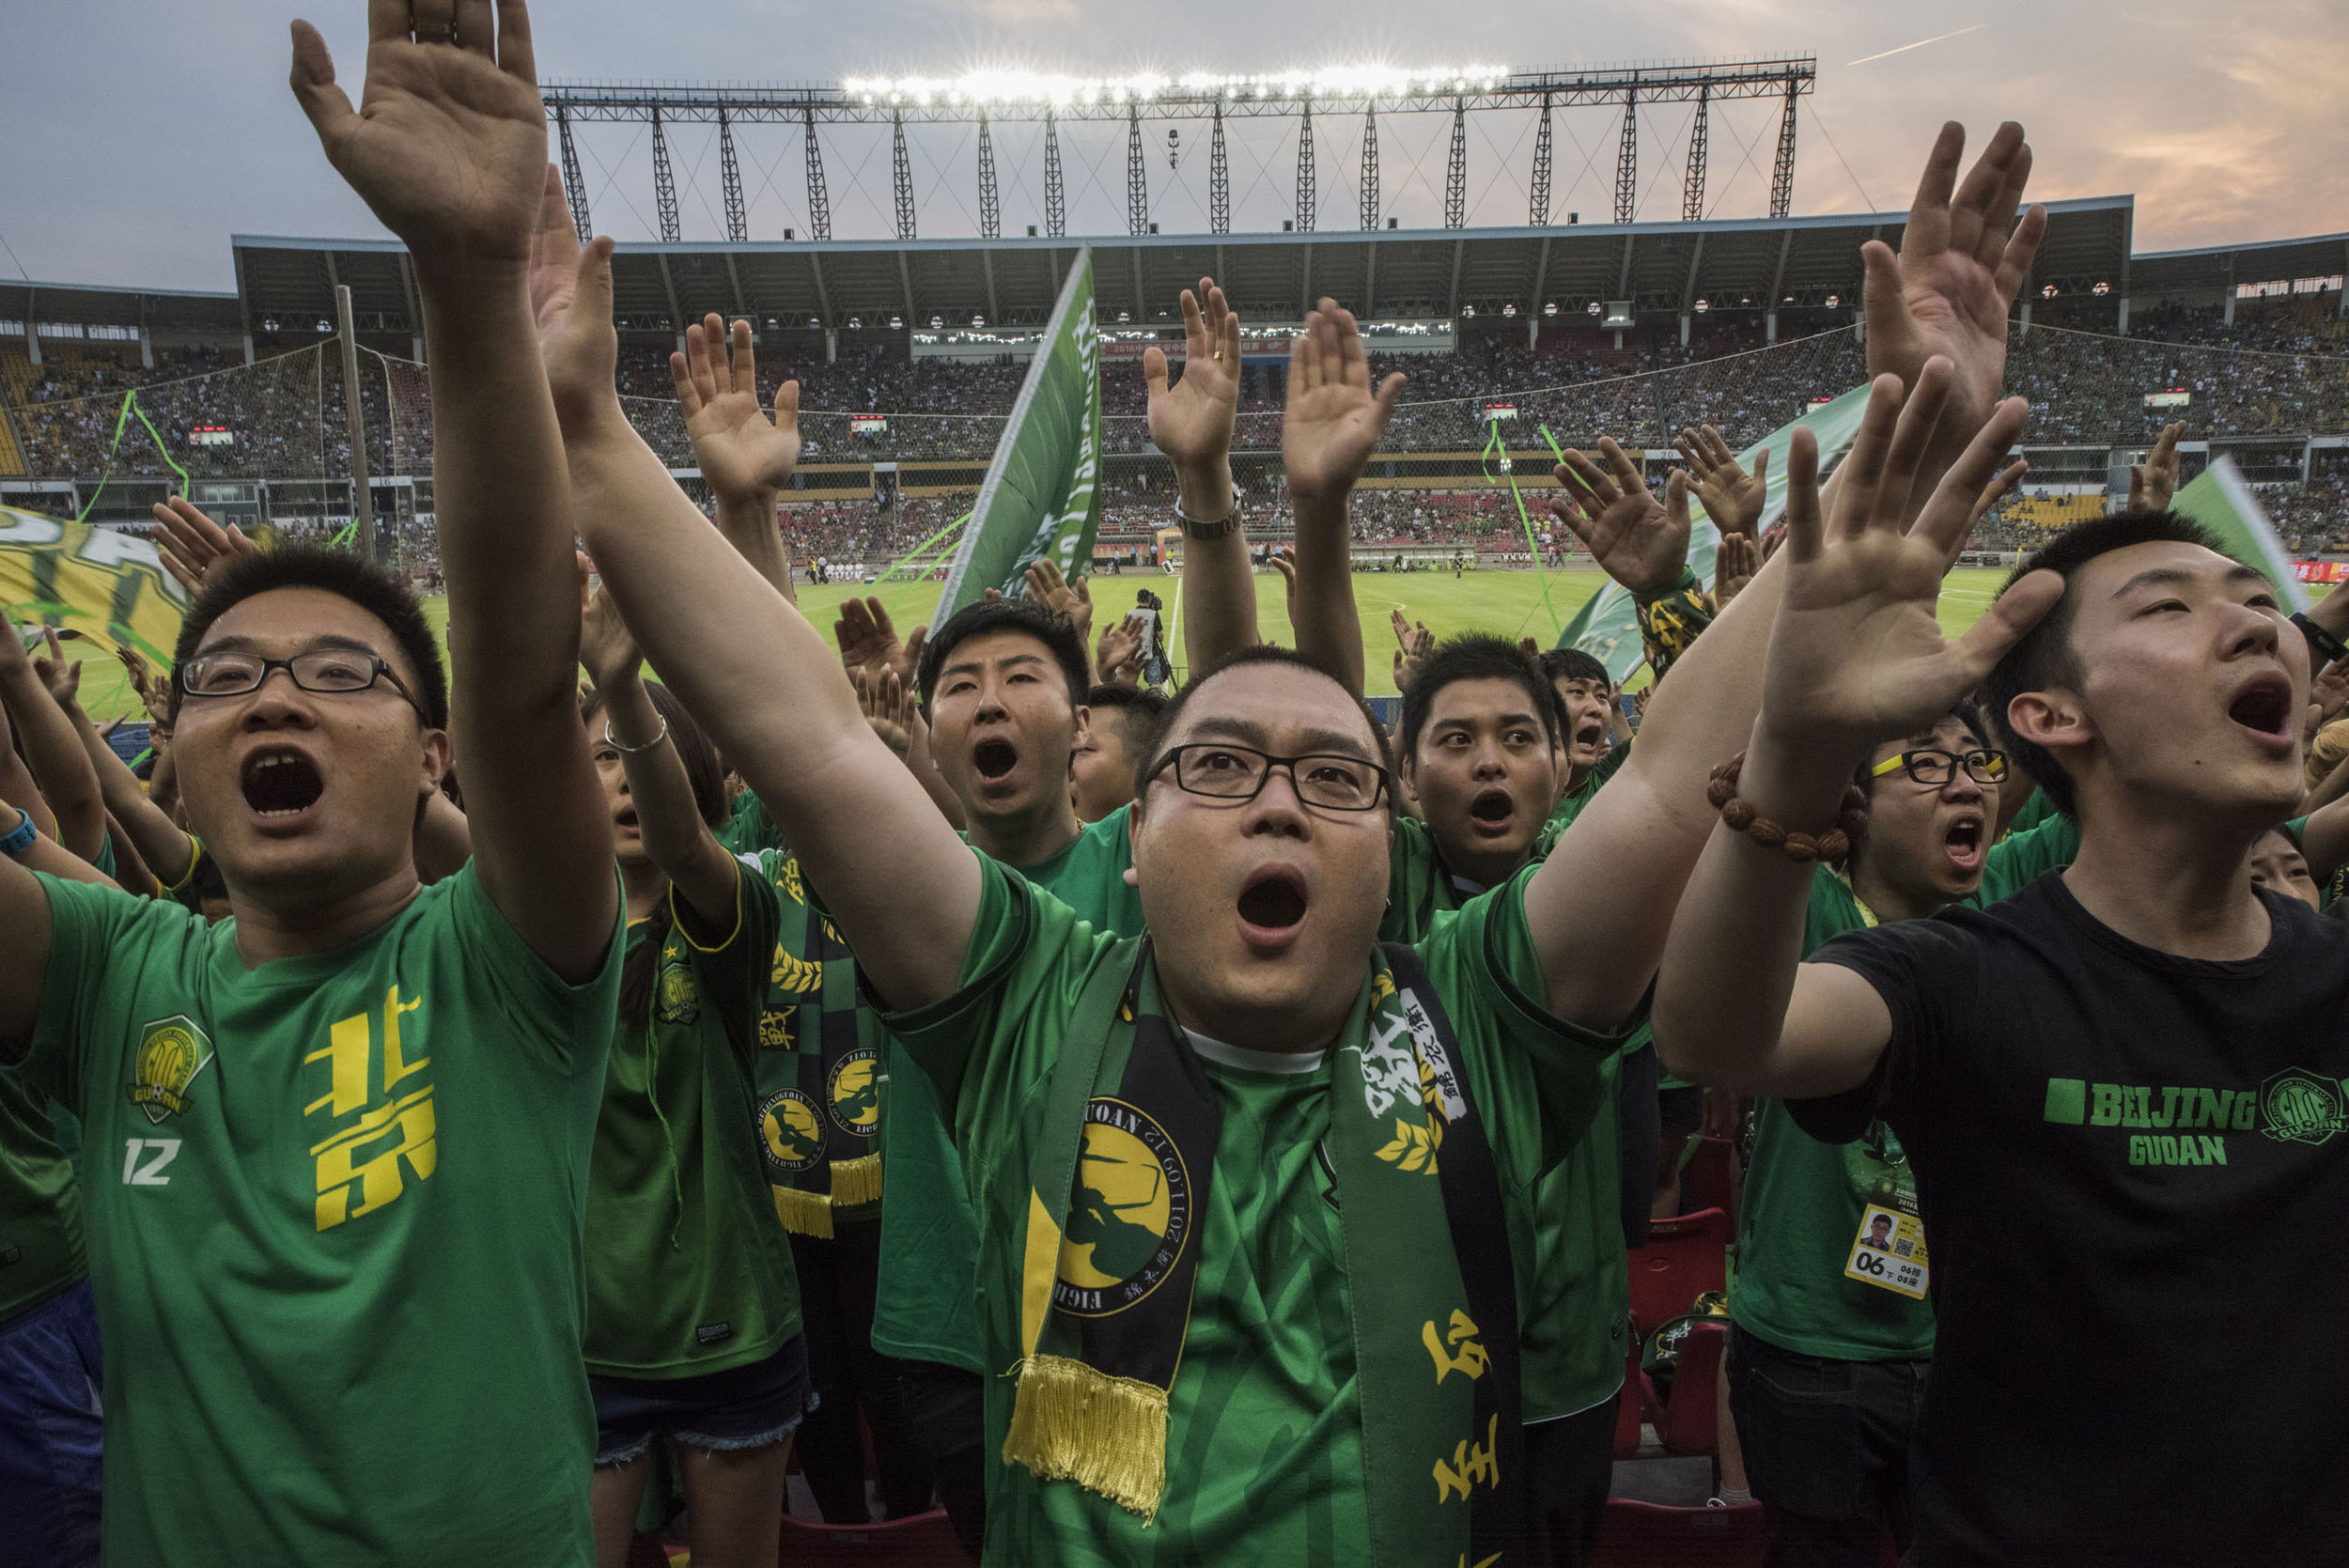 Supporters of the Beijing club Guoan cheering before the start of a game at the Workers Stadium. Guoan supporters are among the most fierce and unruly of Chinese football.